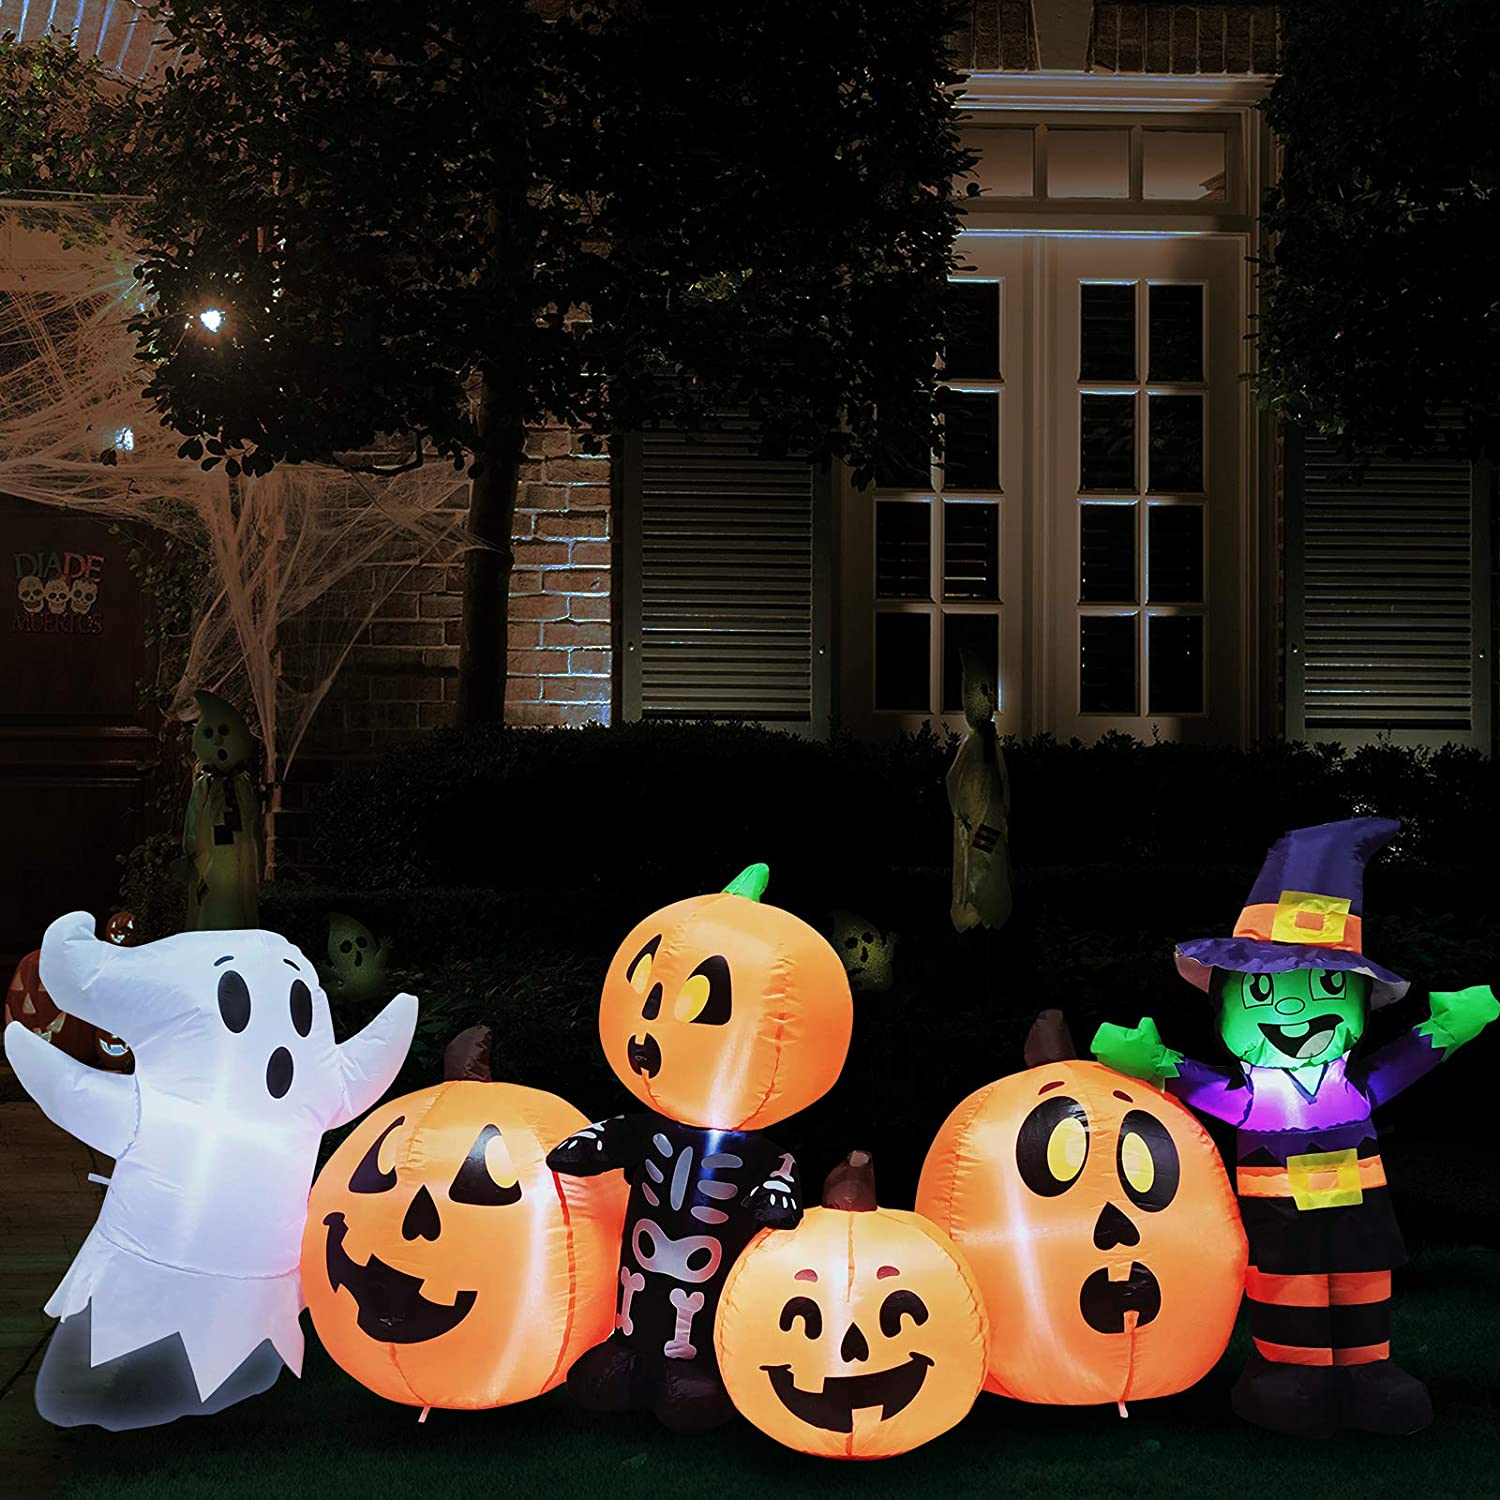 Bargain sale Joiedomi 8 ft Long Three Patch and Pumpkin Halloween Characters A surprise price is realized